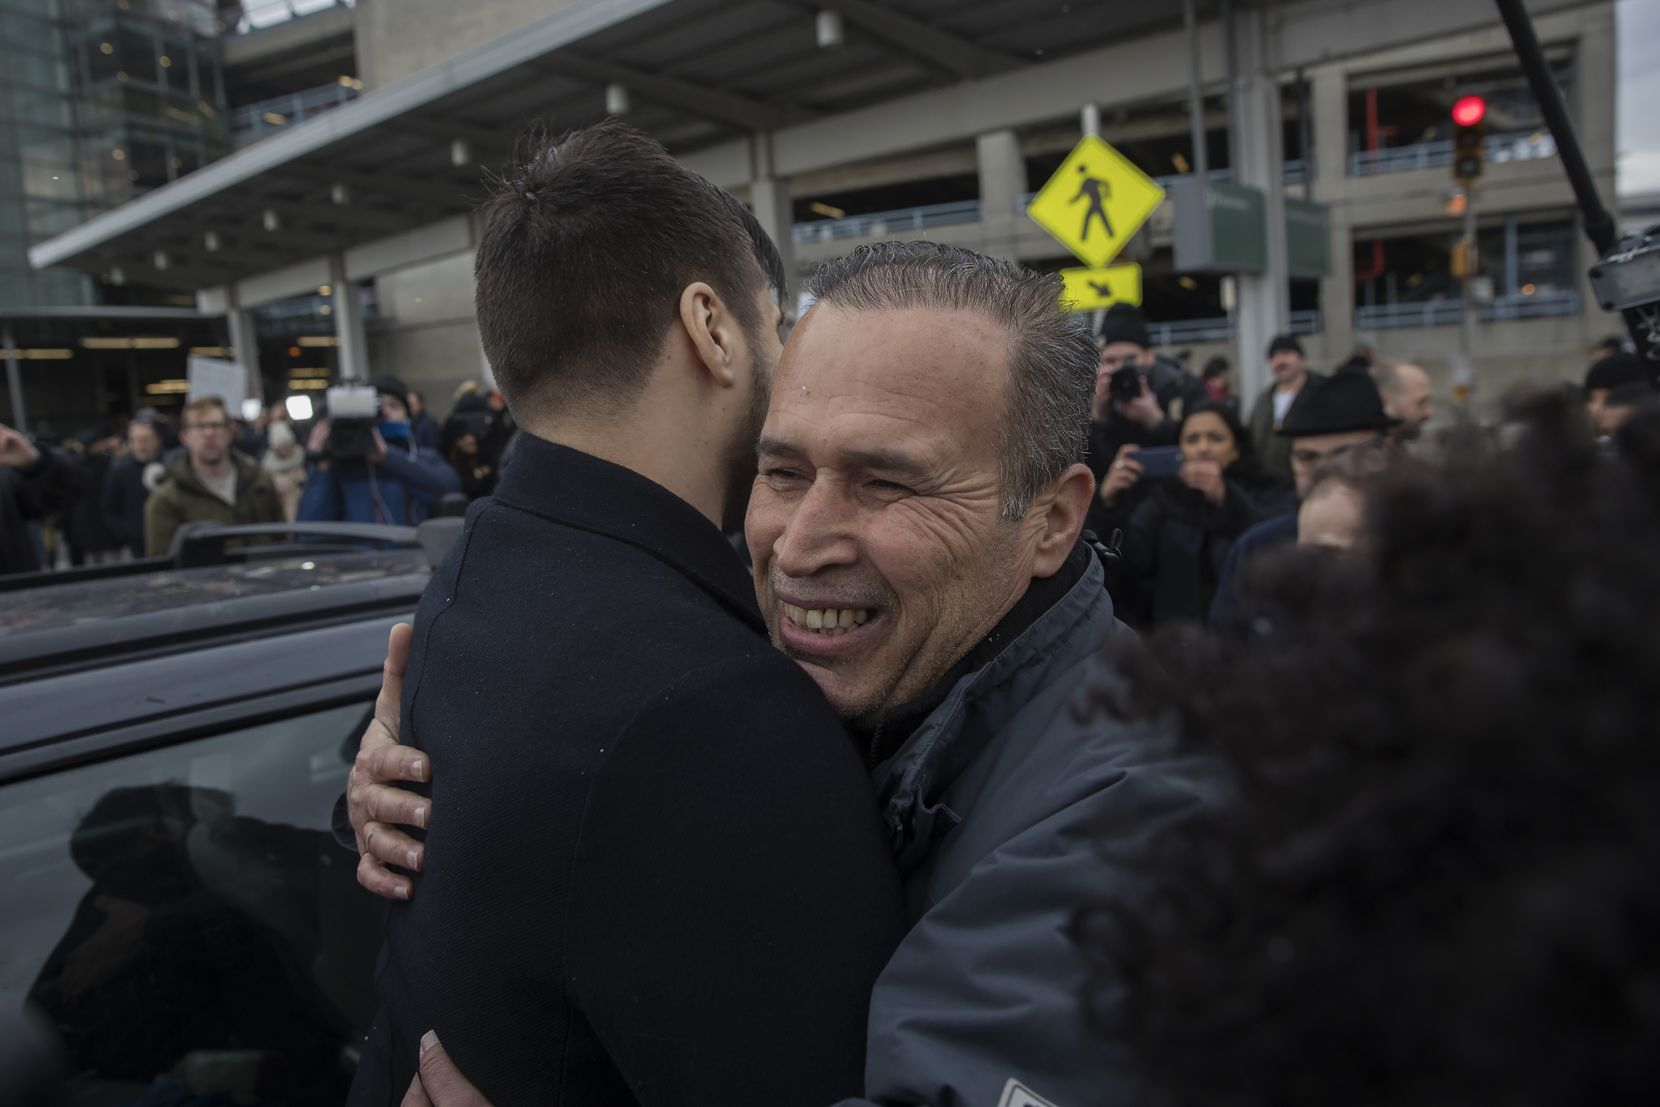 Hameed Khalid Darweesh, center, a former interpreter for the U.S. military in Iraq, embraces a supporter after his release from detention at John F. Kennedy International Airport in New York, Jan. 28, 2017.